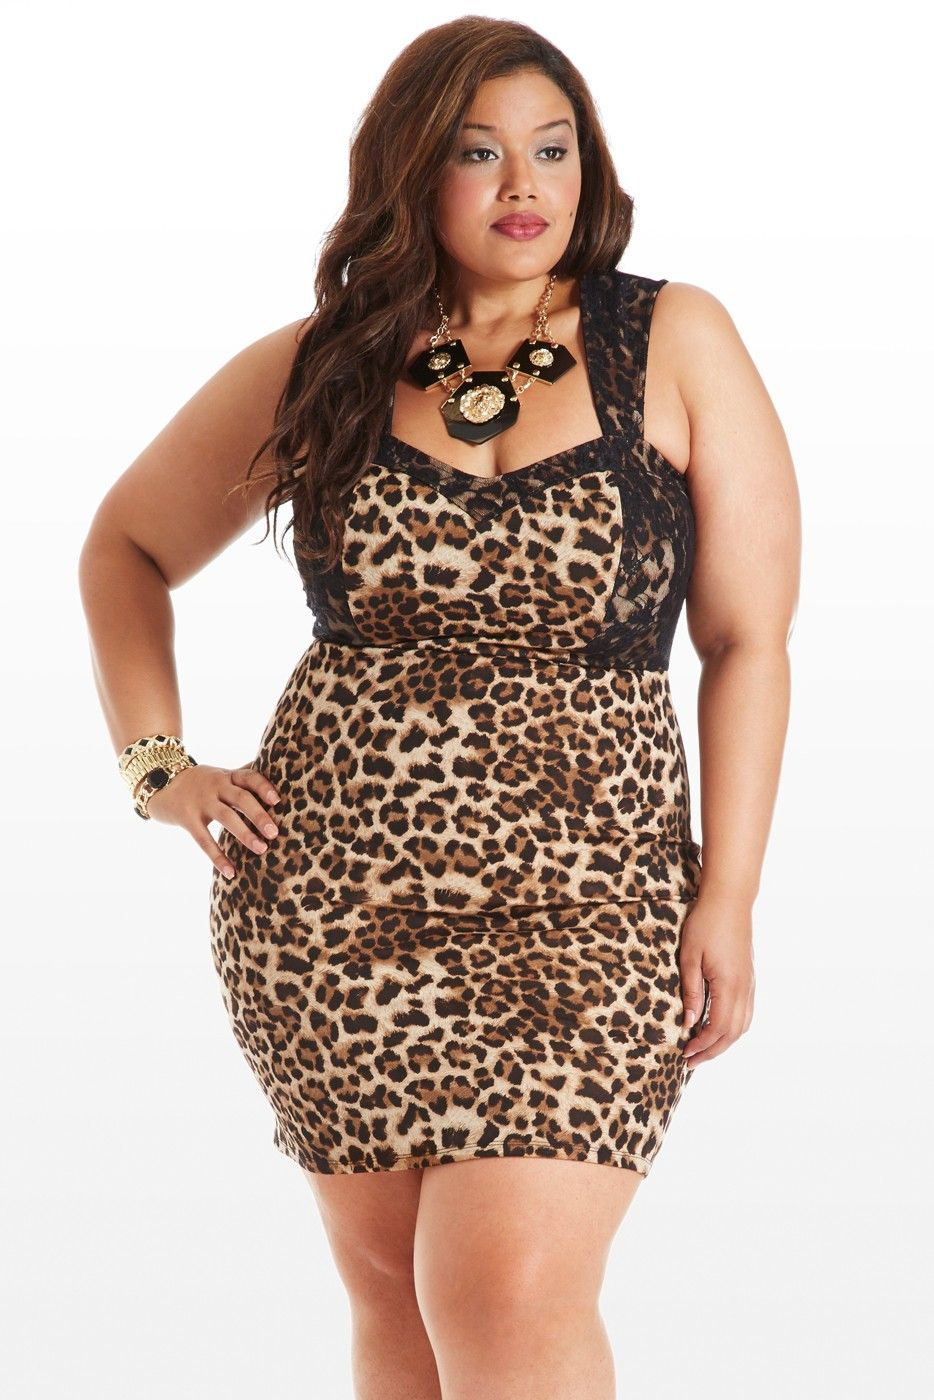 bedroom eyes animal print dress - i got to get this dress as well